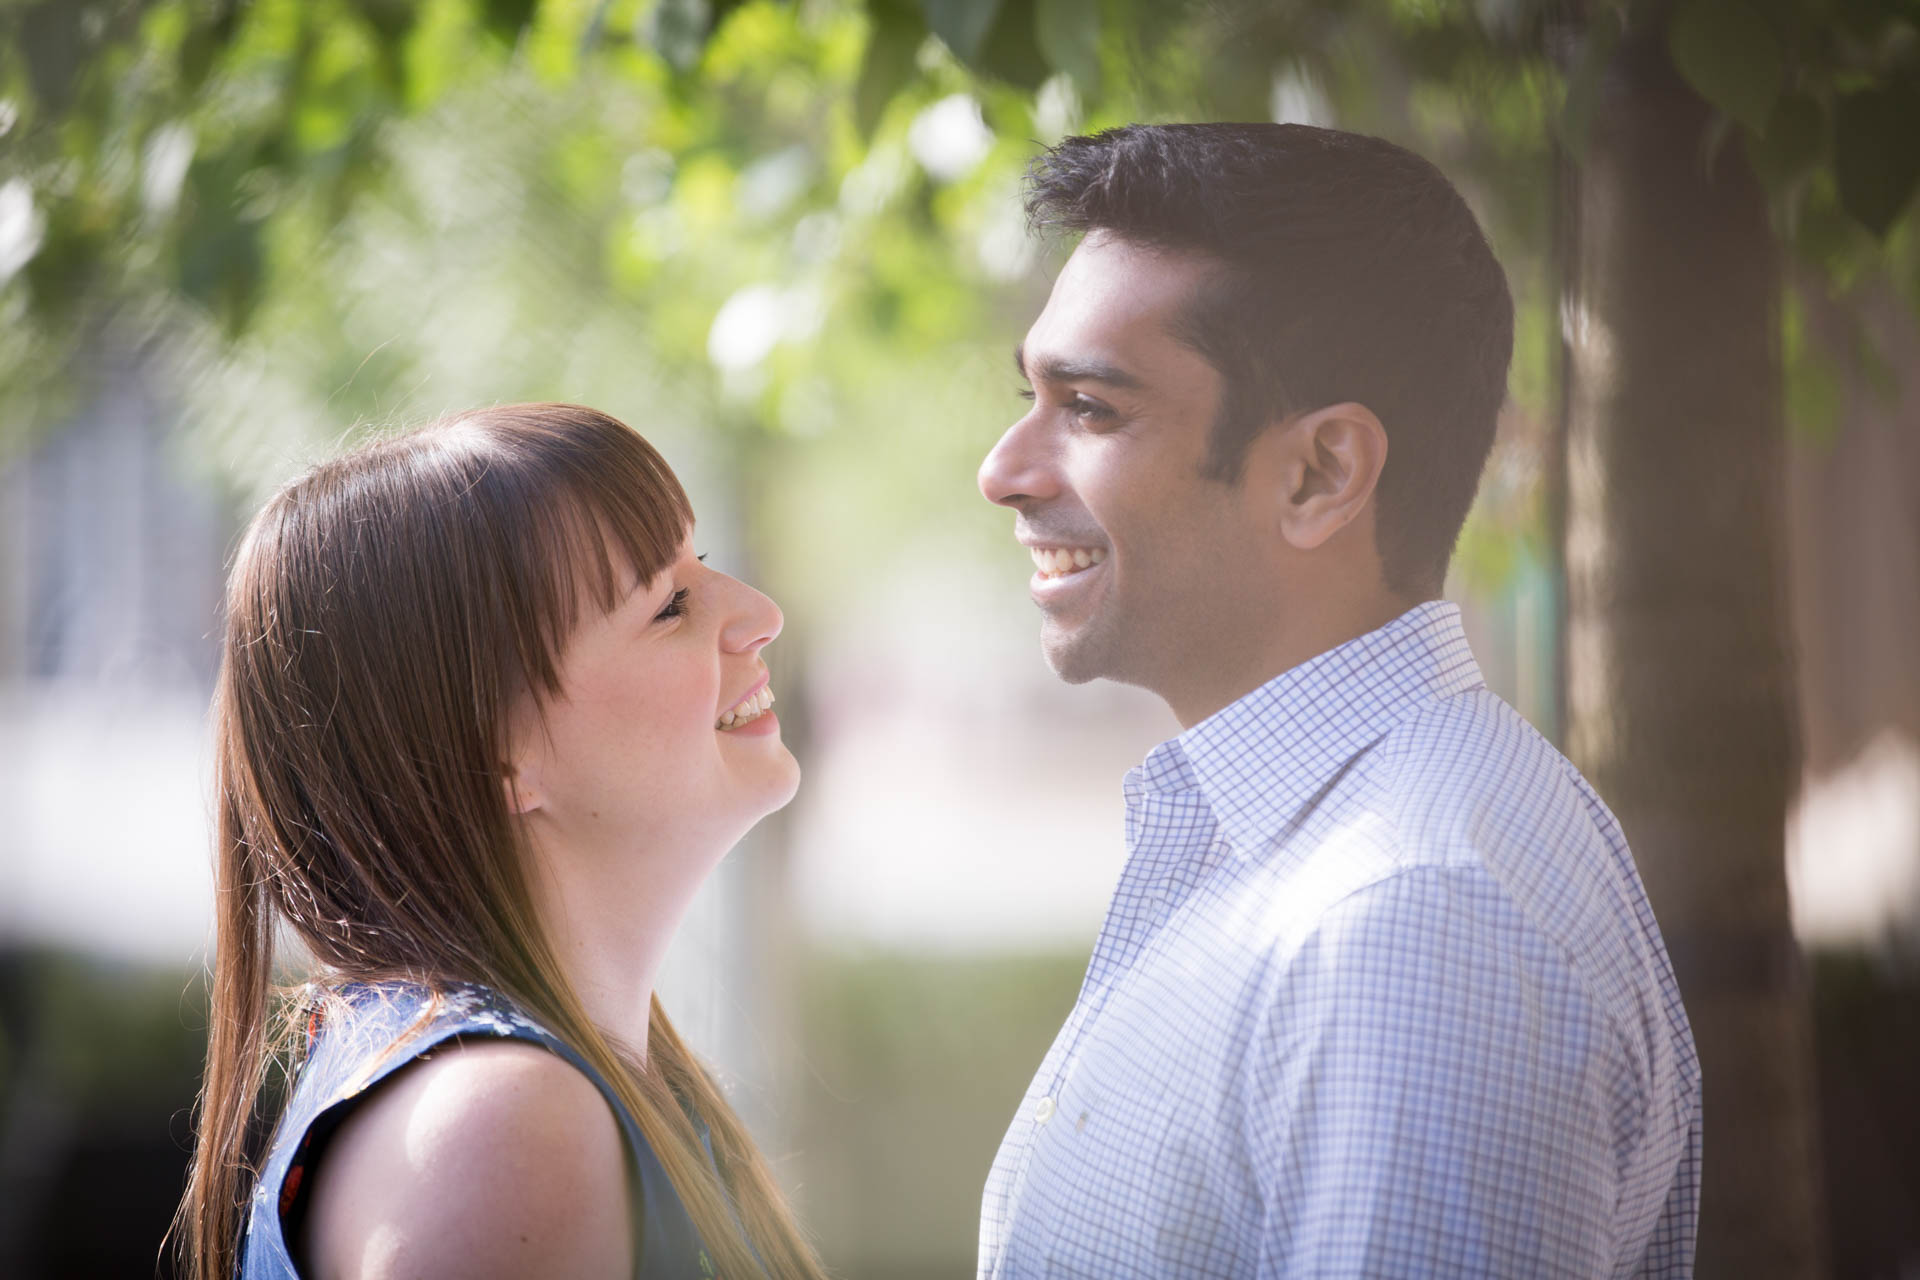 Charlotte and Niranjan